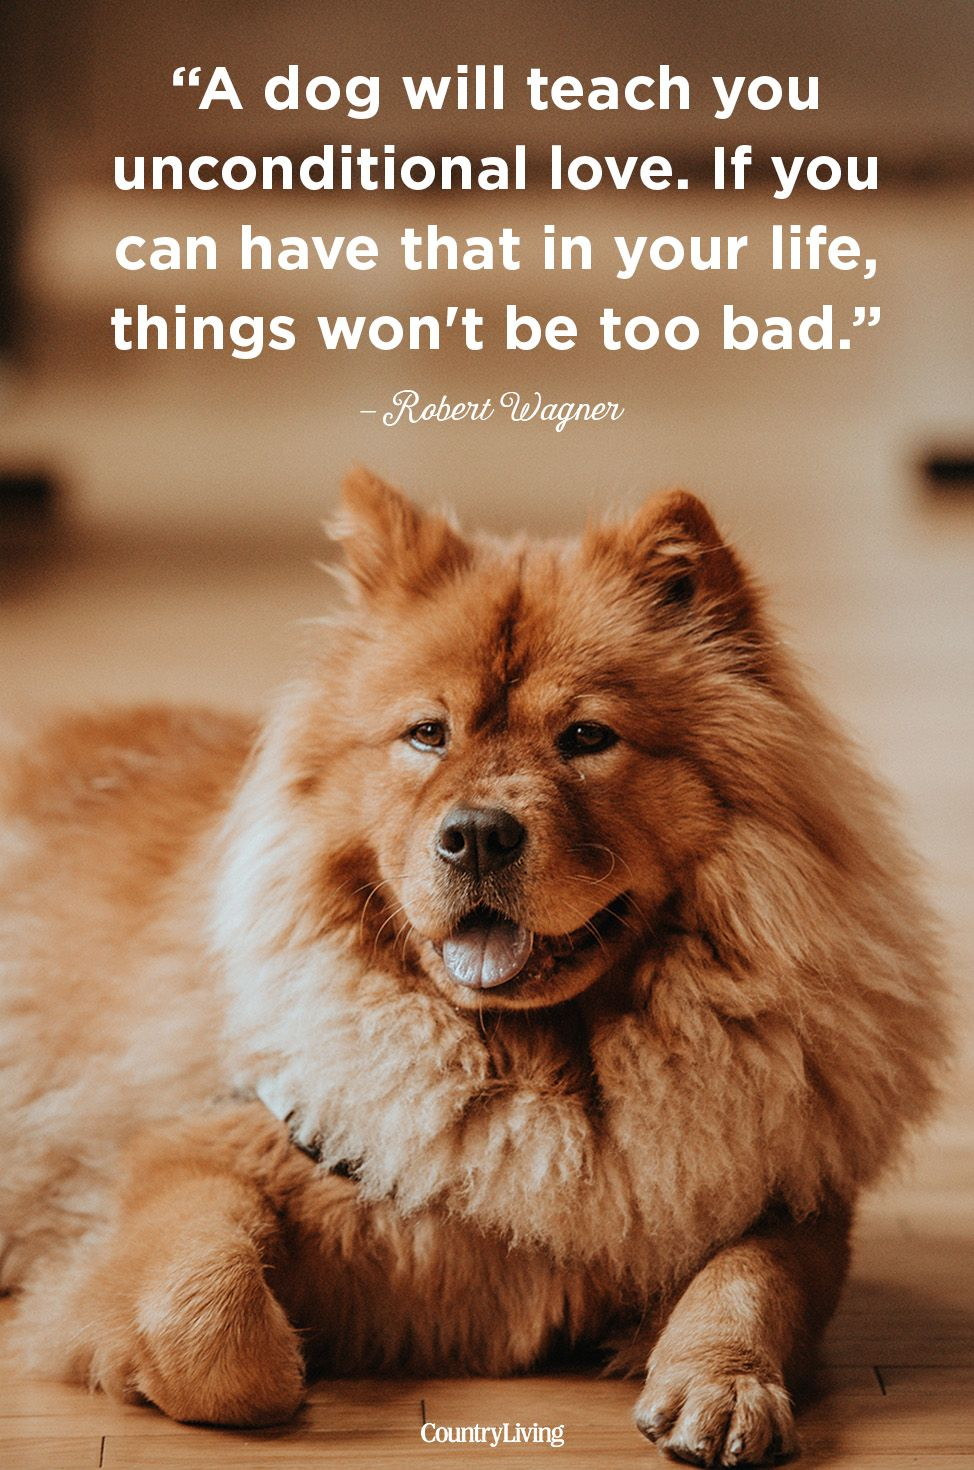 Dog Love Quotes 20 Cute Dog Love Quotes   Puppy Sayings and Dog Best Friend Quotes Dog Love Quotes